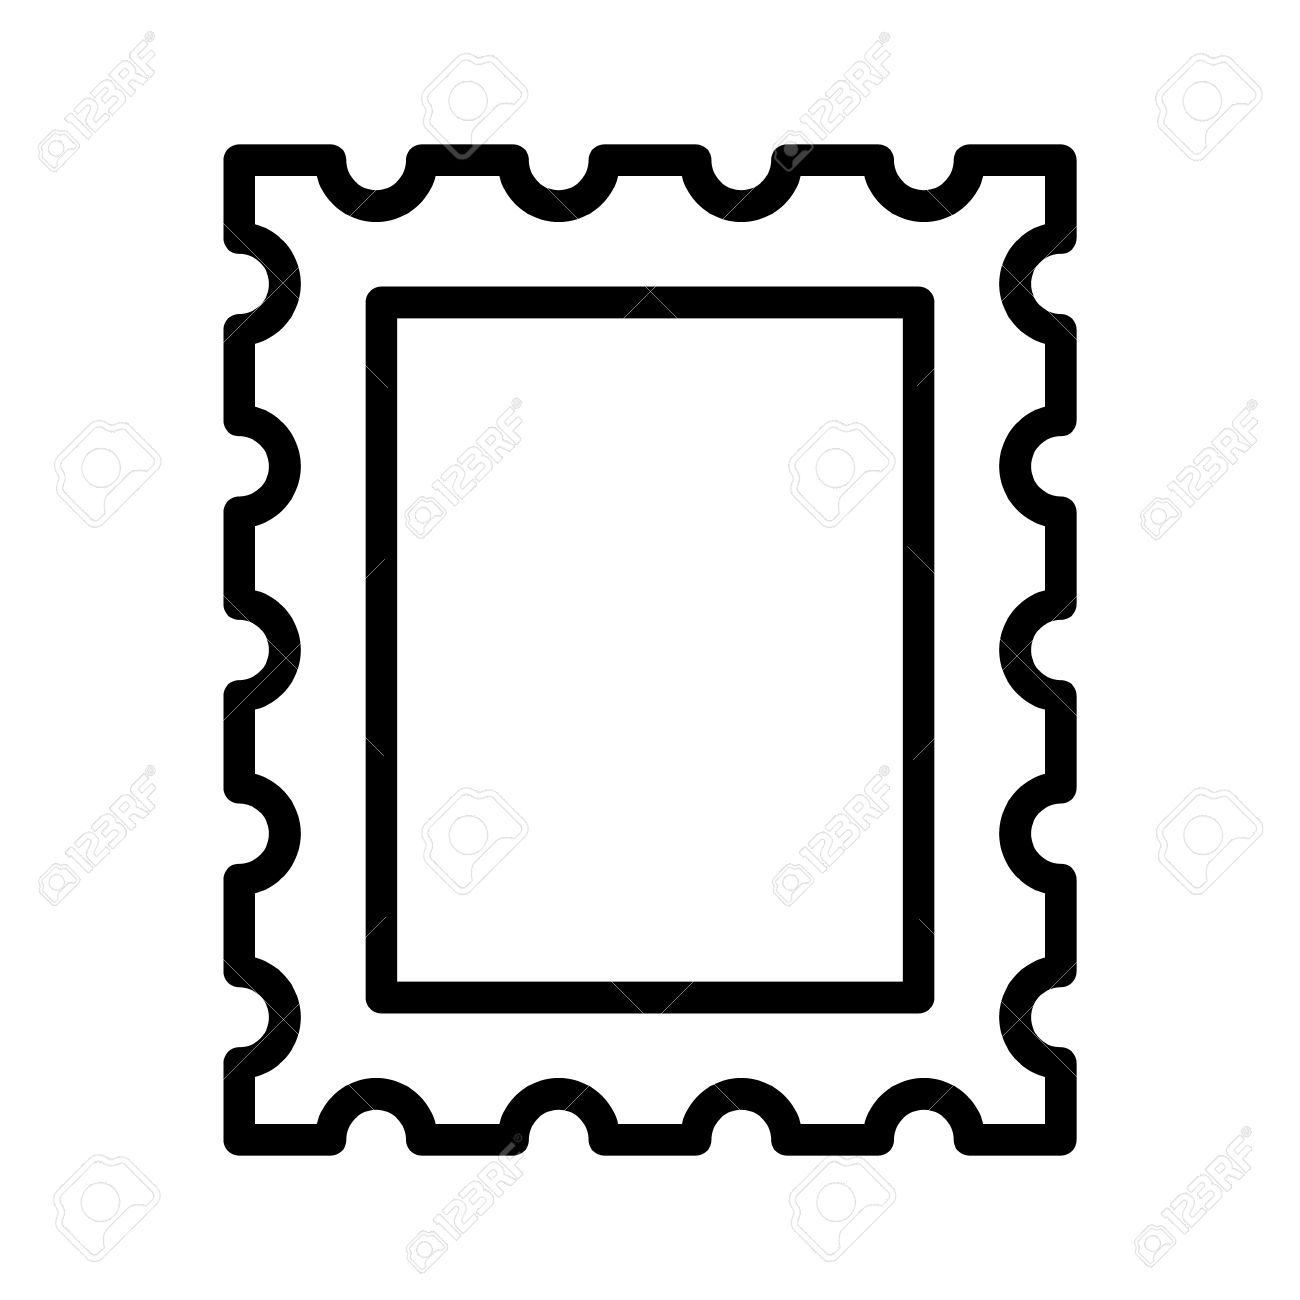 postage stamp or letter stamp line art icon royalty free cliparts